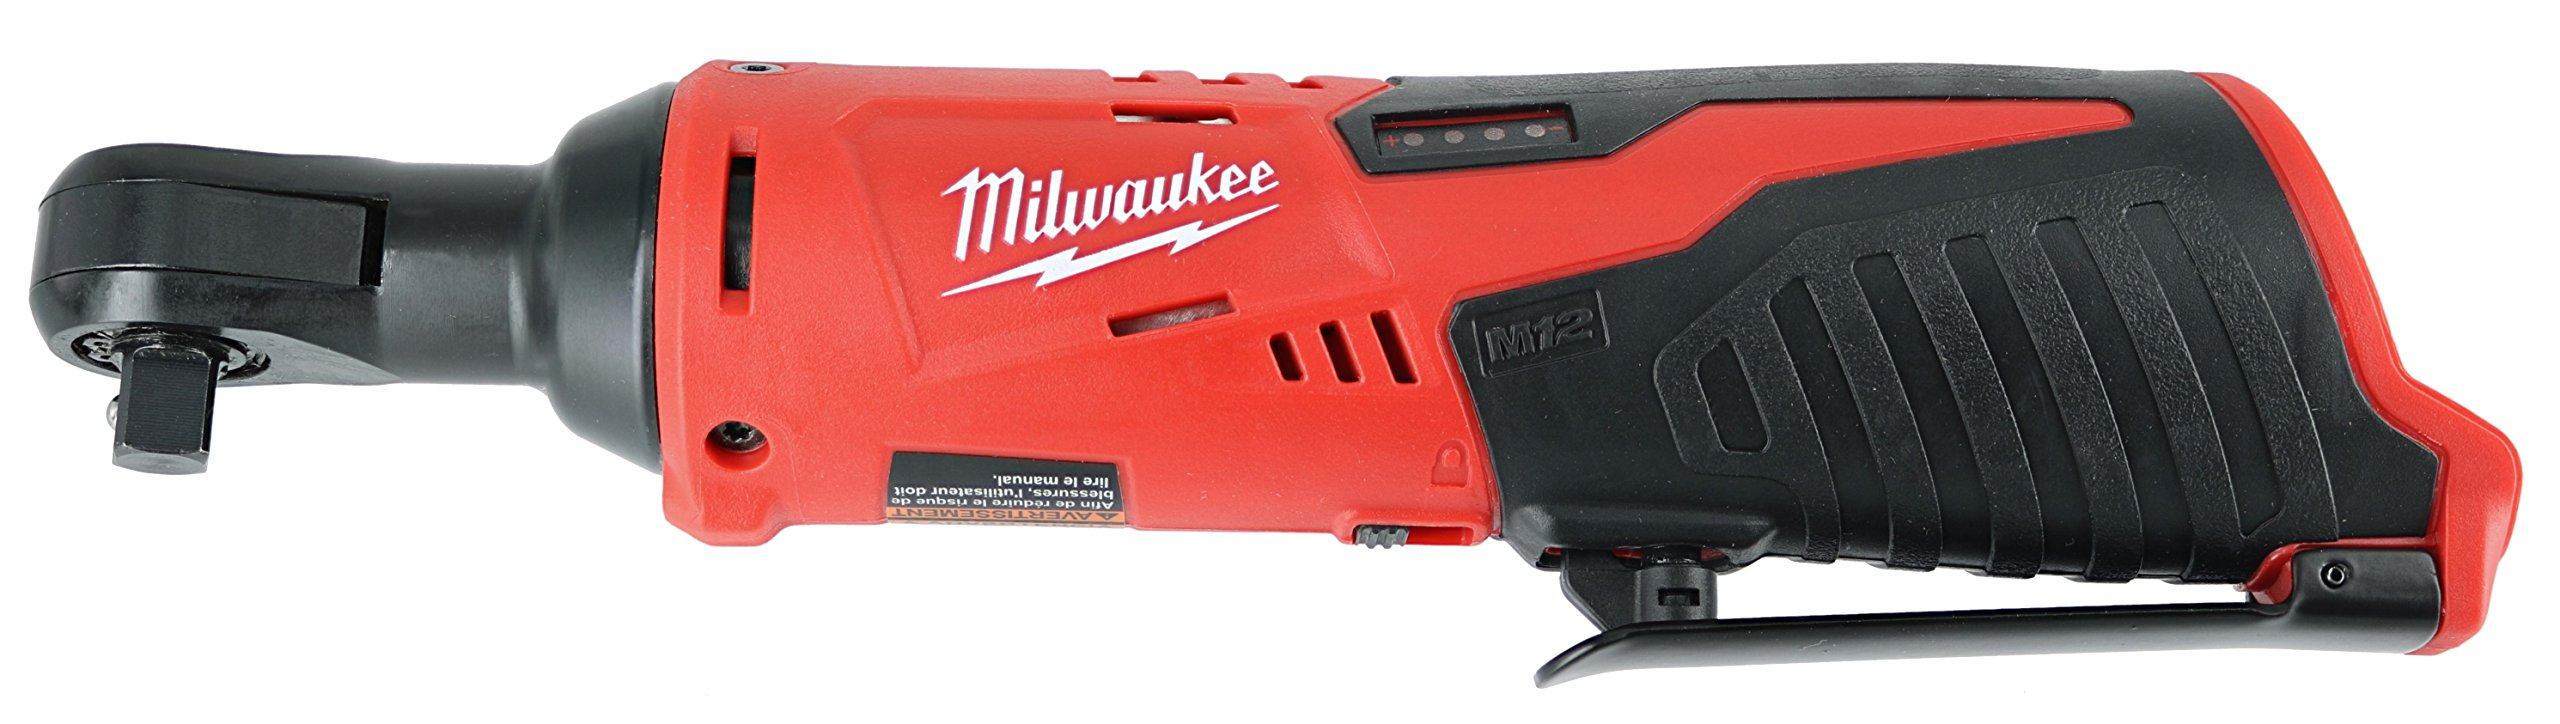 Milwaukee 2457-20 M12 Cordless 3/8'' Sub-Compact 35 ft-Lbs 250 RPM Ratchet w/Variable Speed Trigger (Battery Not Included, Power Tool Only)